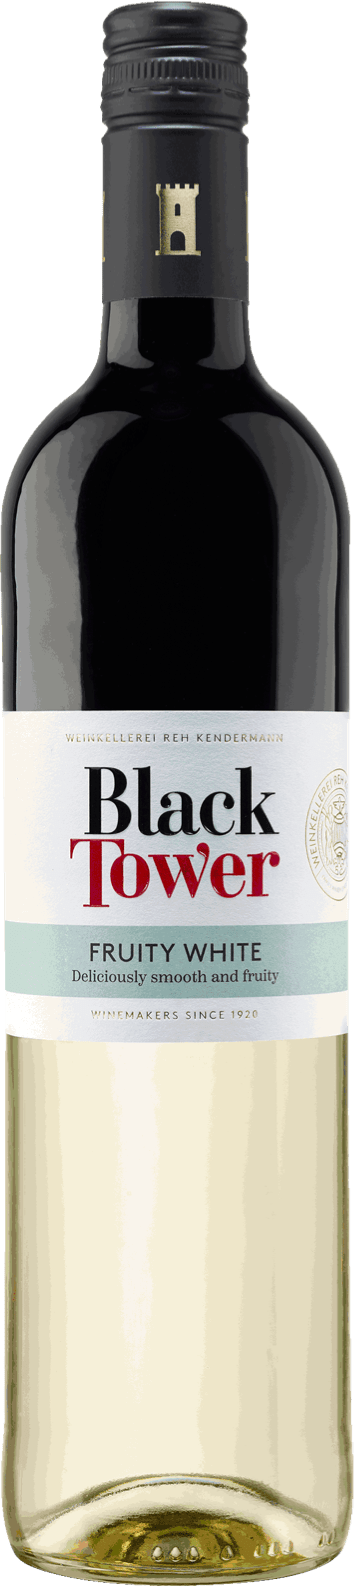 Black Tower Fruity White